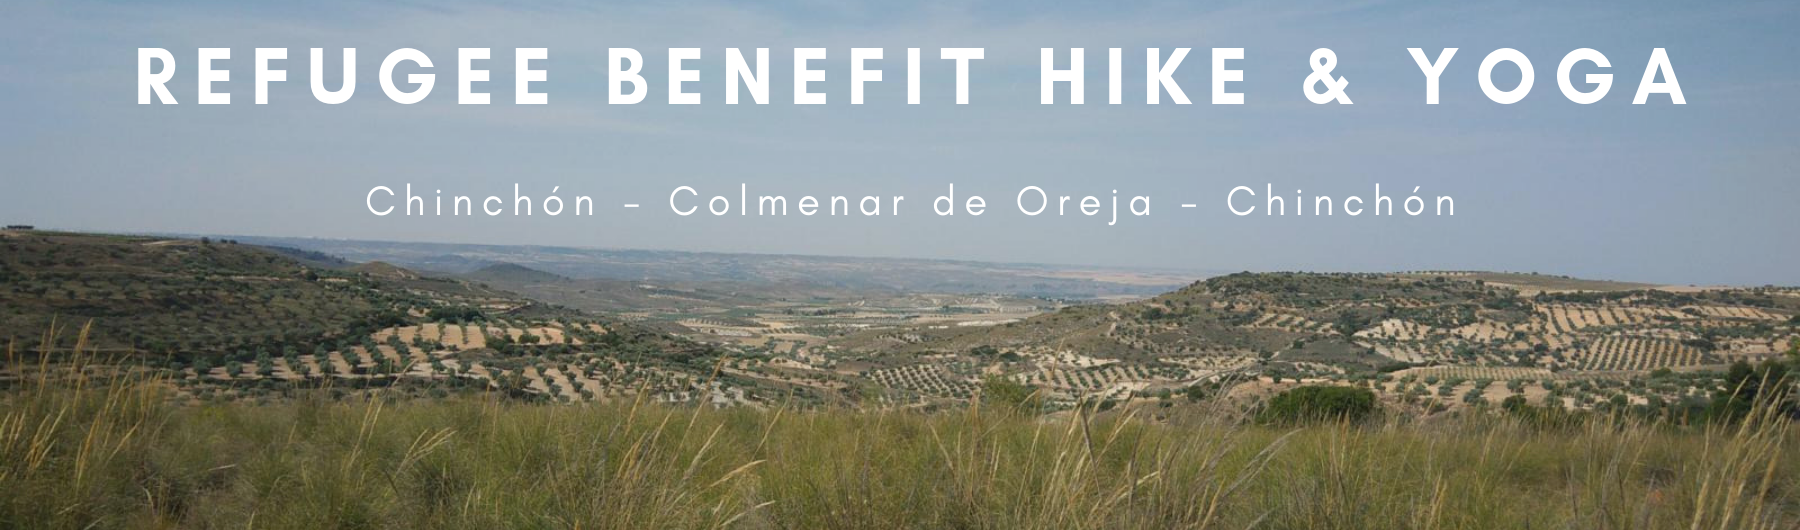 World Refugee Day Benefit Hike and Yoga Chinchón